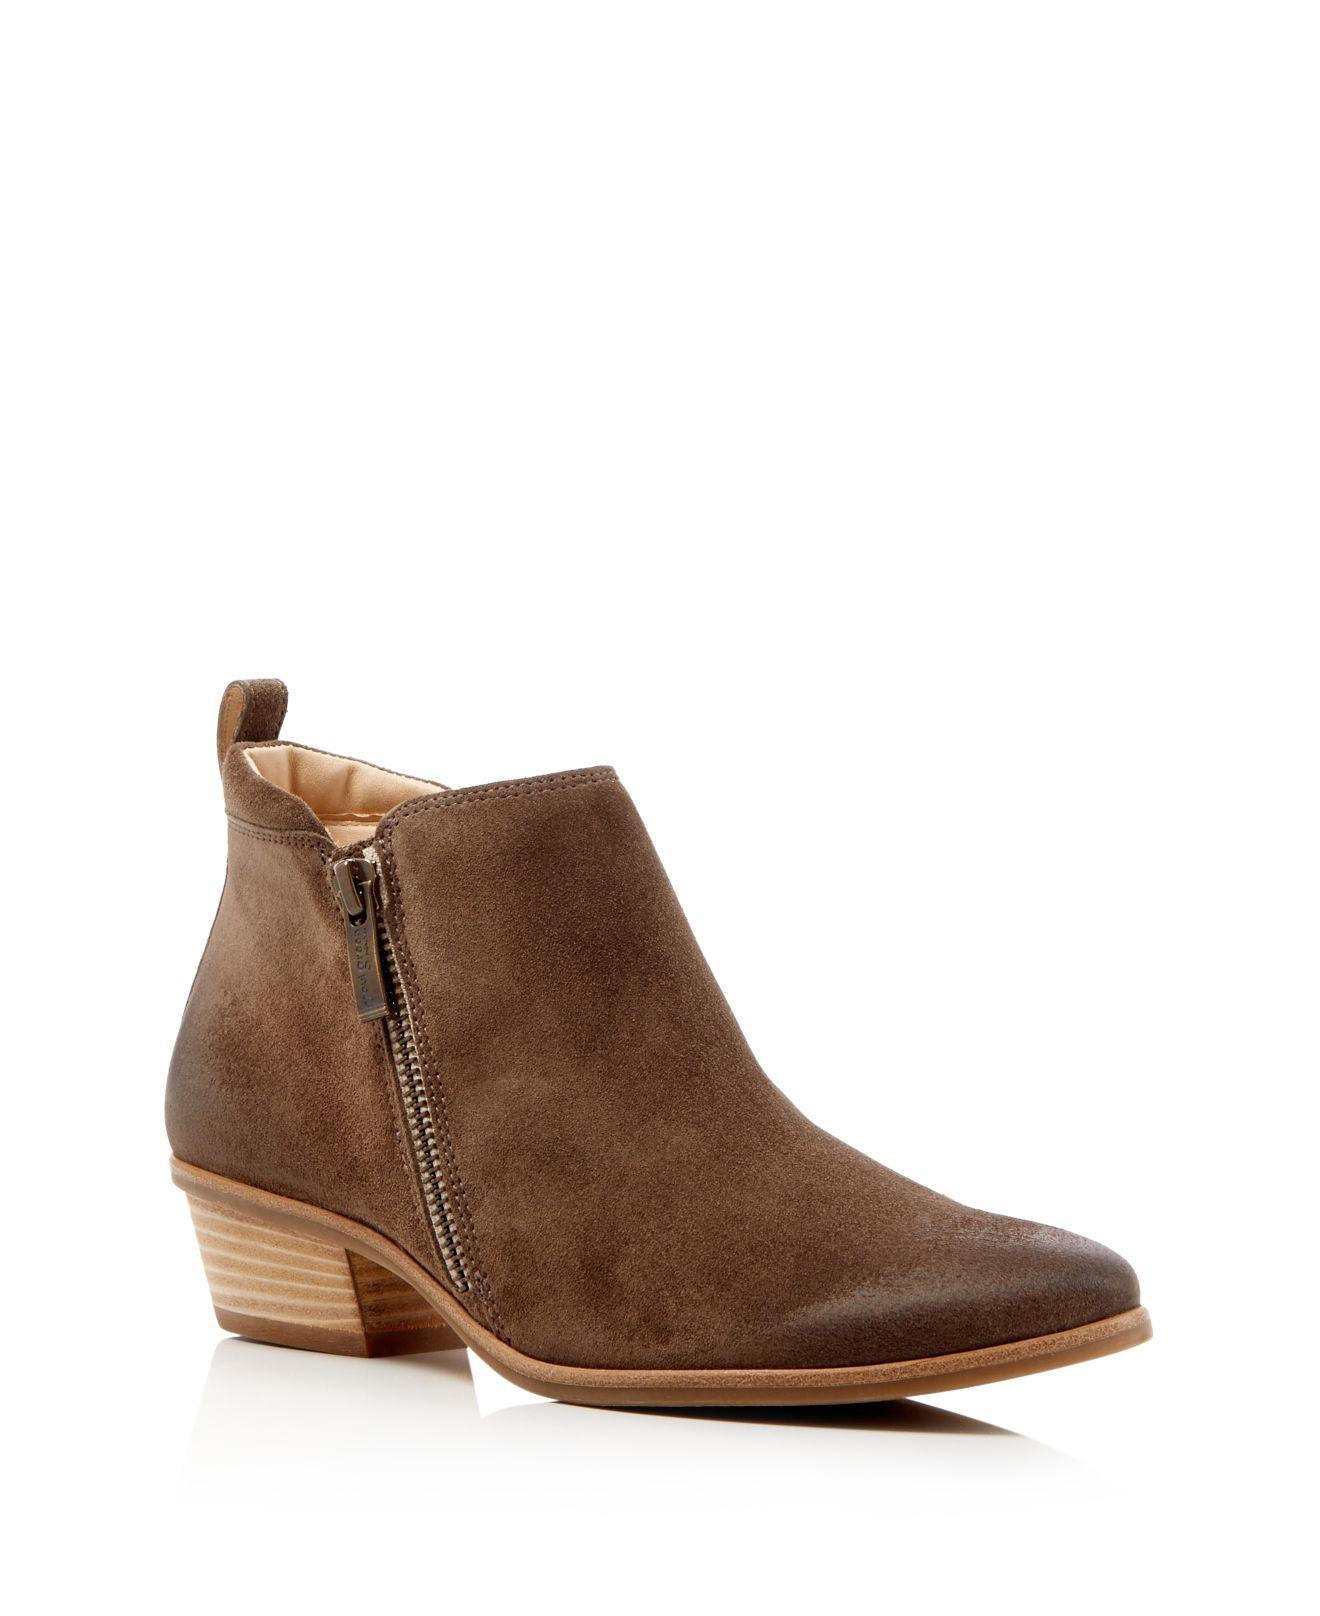 lyst paul green jillian suede ankle boots in brown. Black Bedroom Furniture Sets. Home Design Ideas